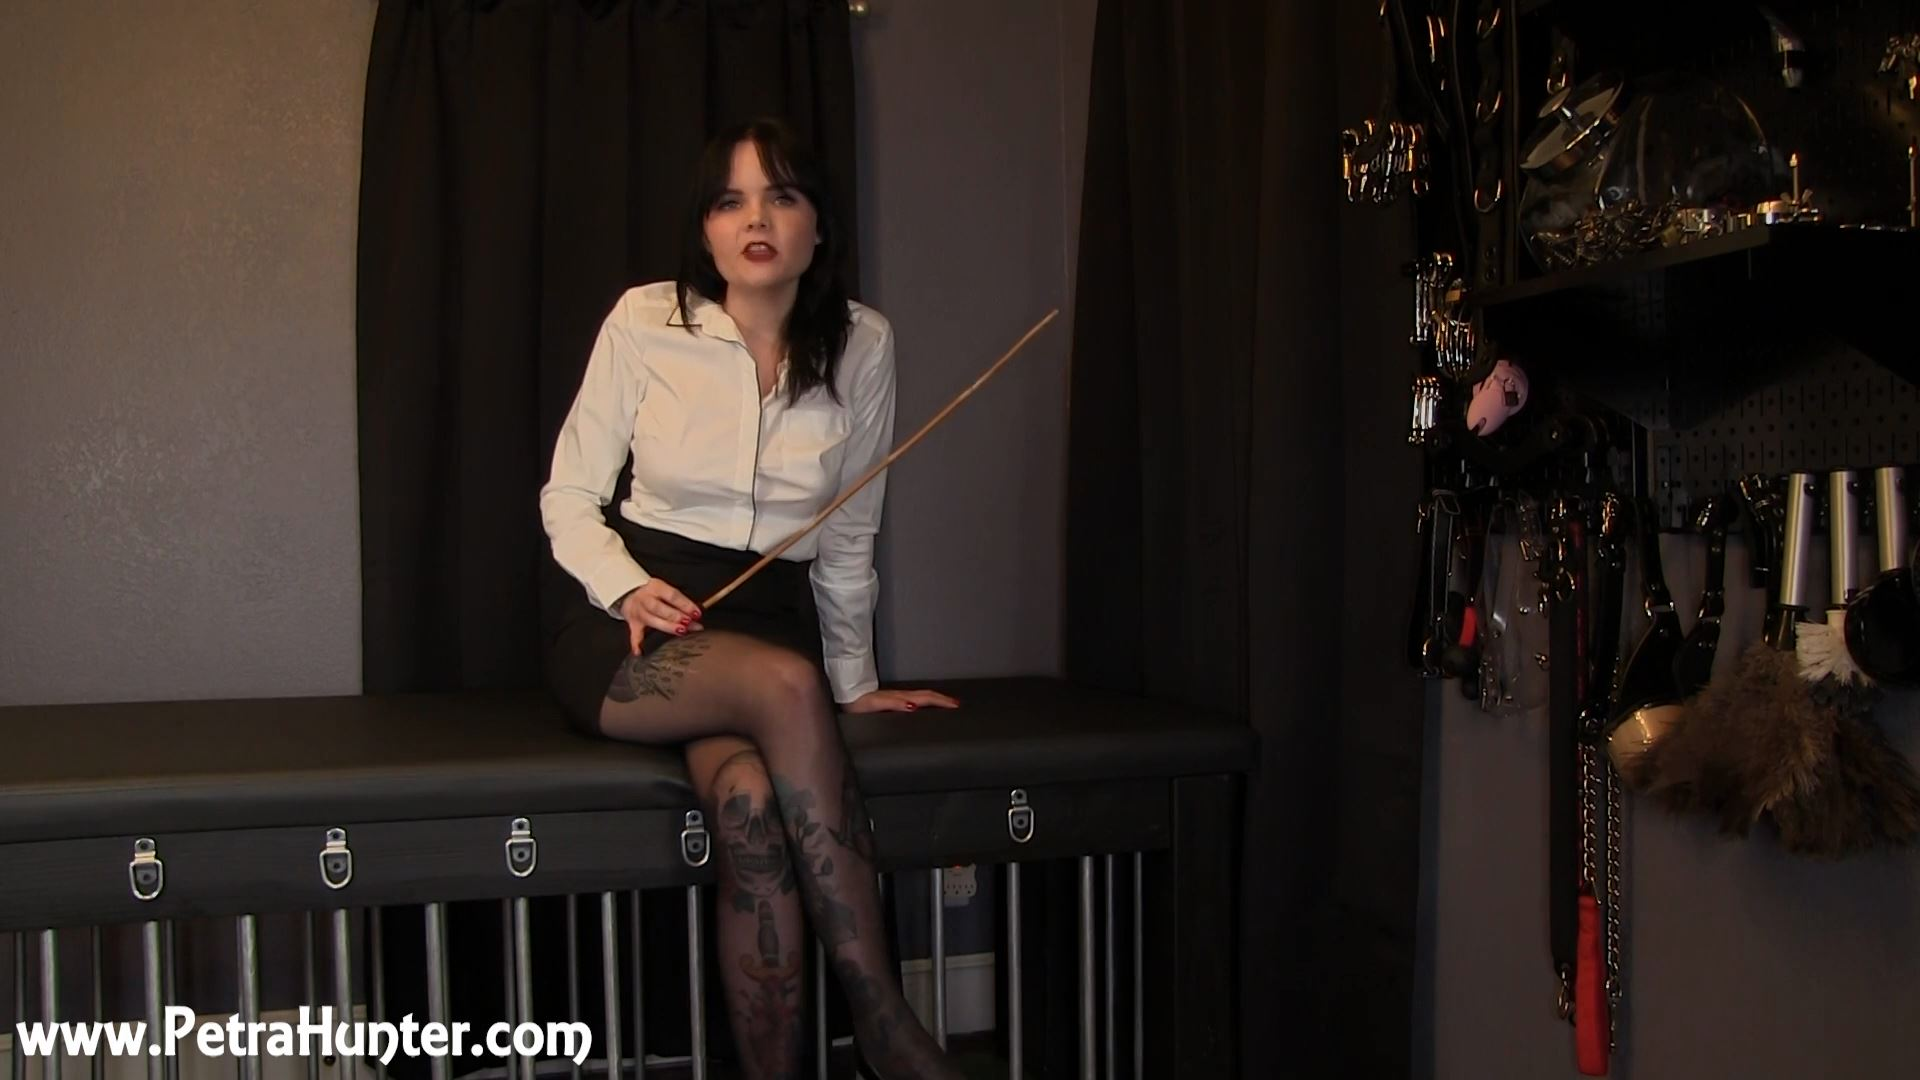 Mistress Petra Hunter In Scene: Annual Performance Review - STREAMPETRA - FULL HD/1080p/MP4